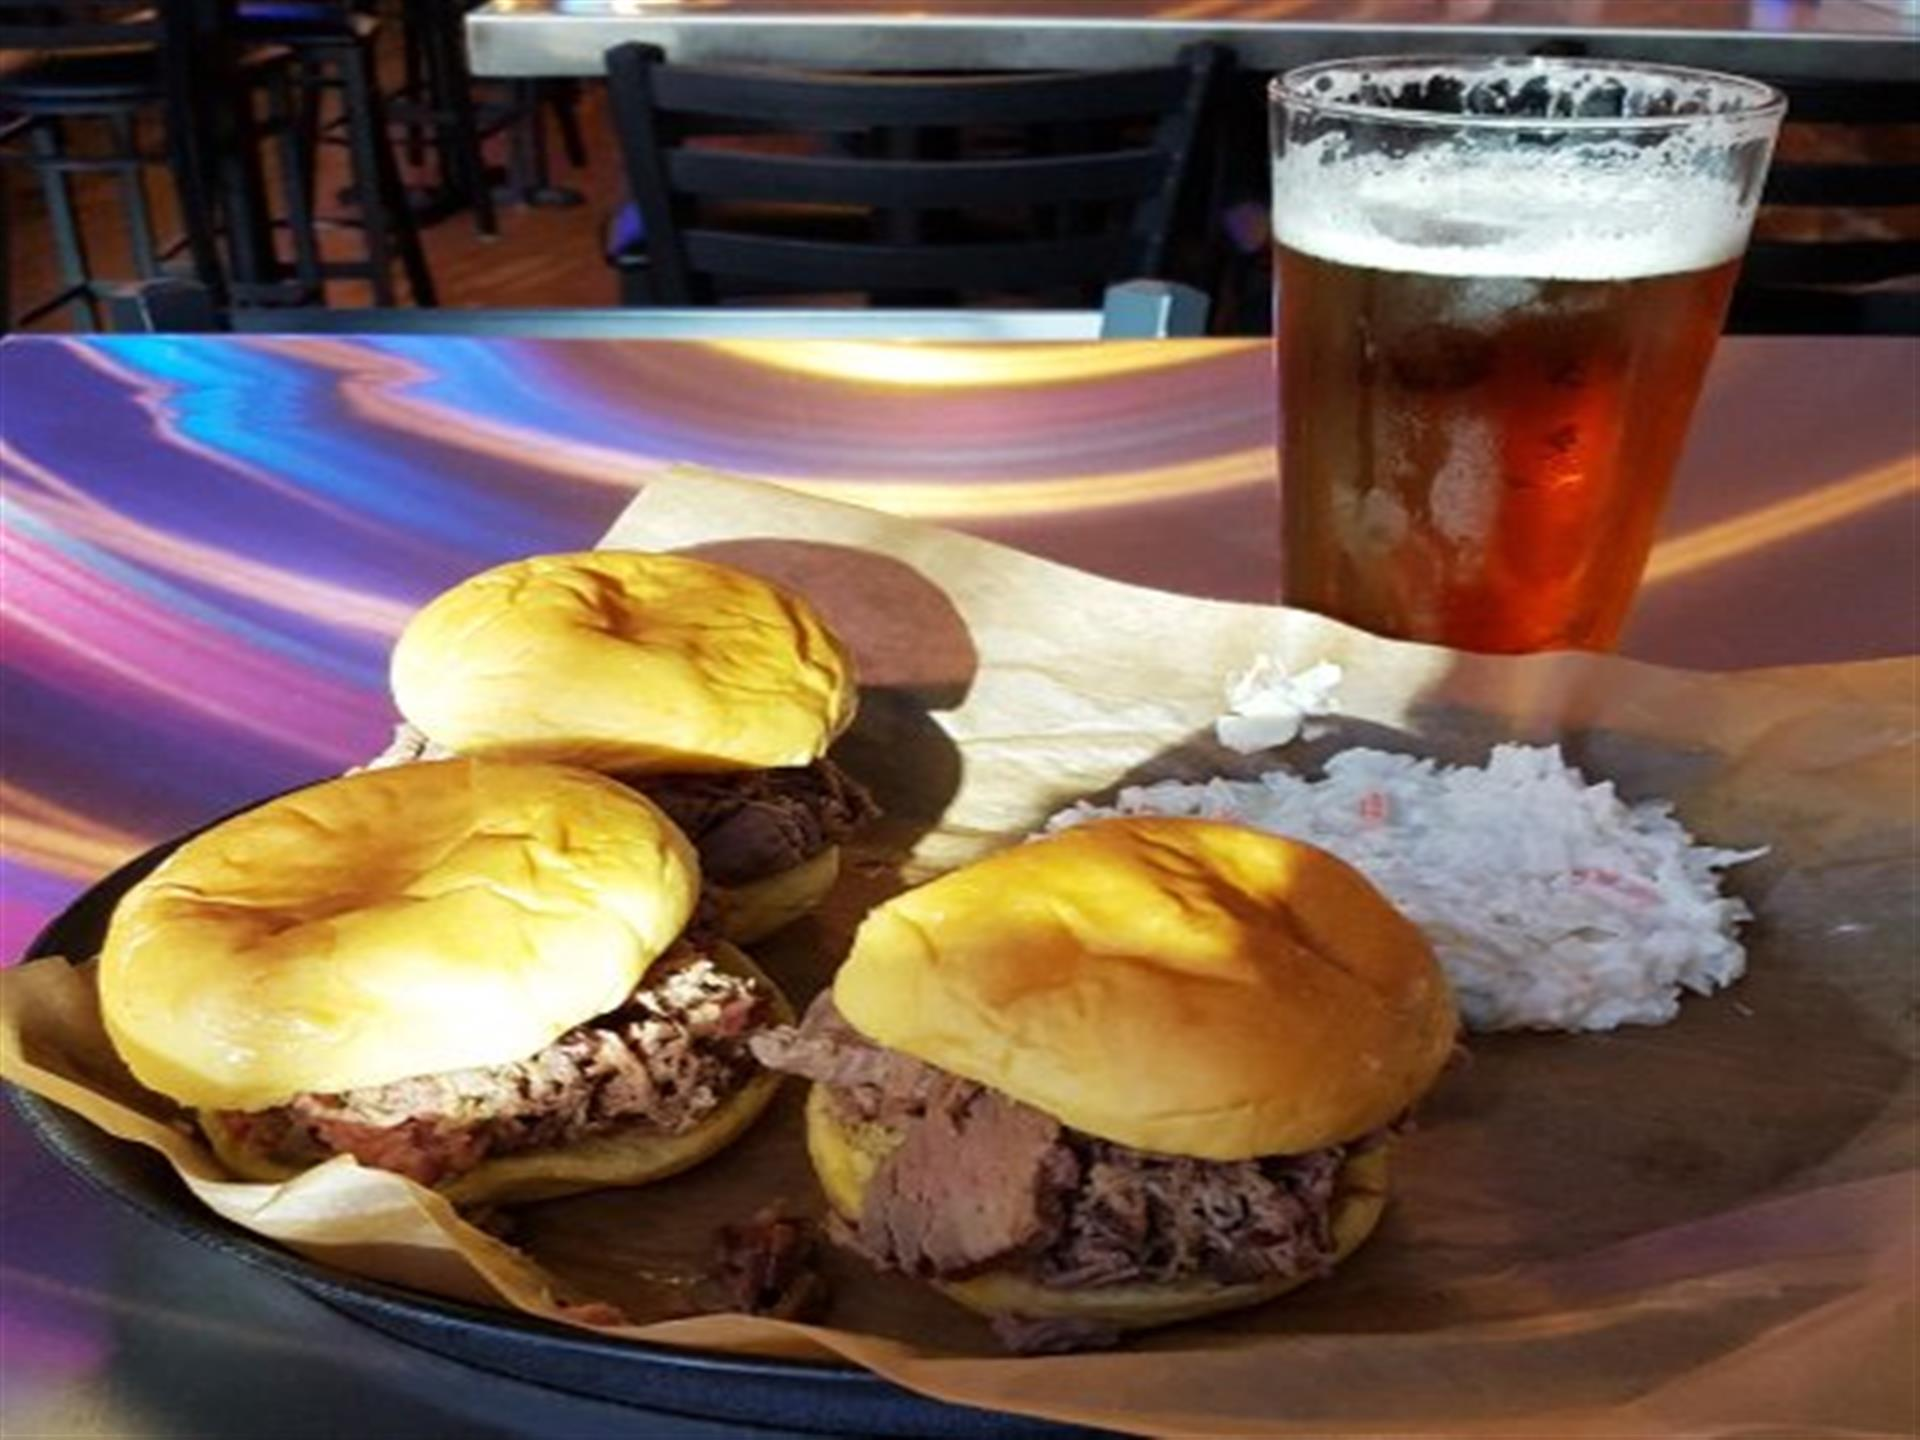 Brisket / pork sandwiches with coleslaw on tray with full beer glass on counter.